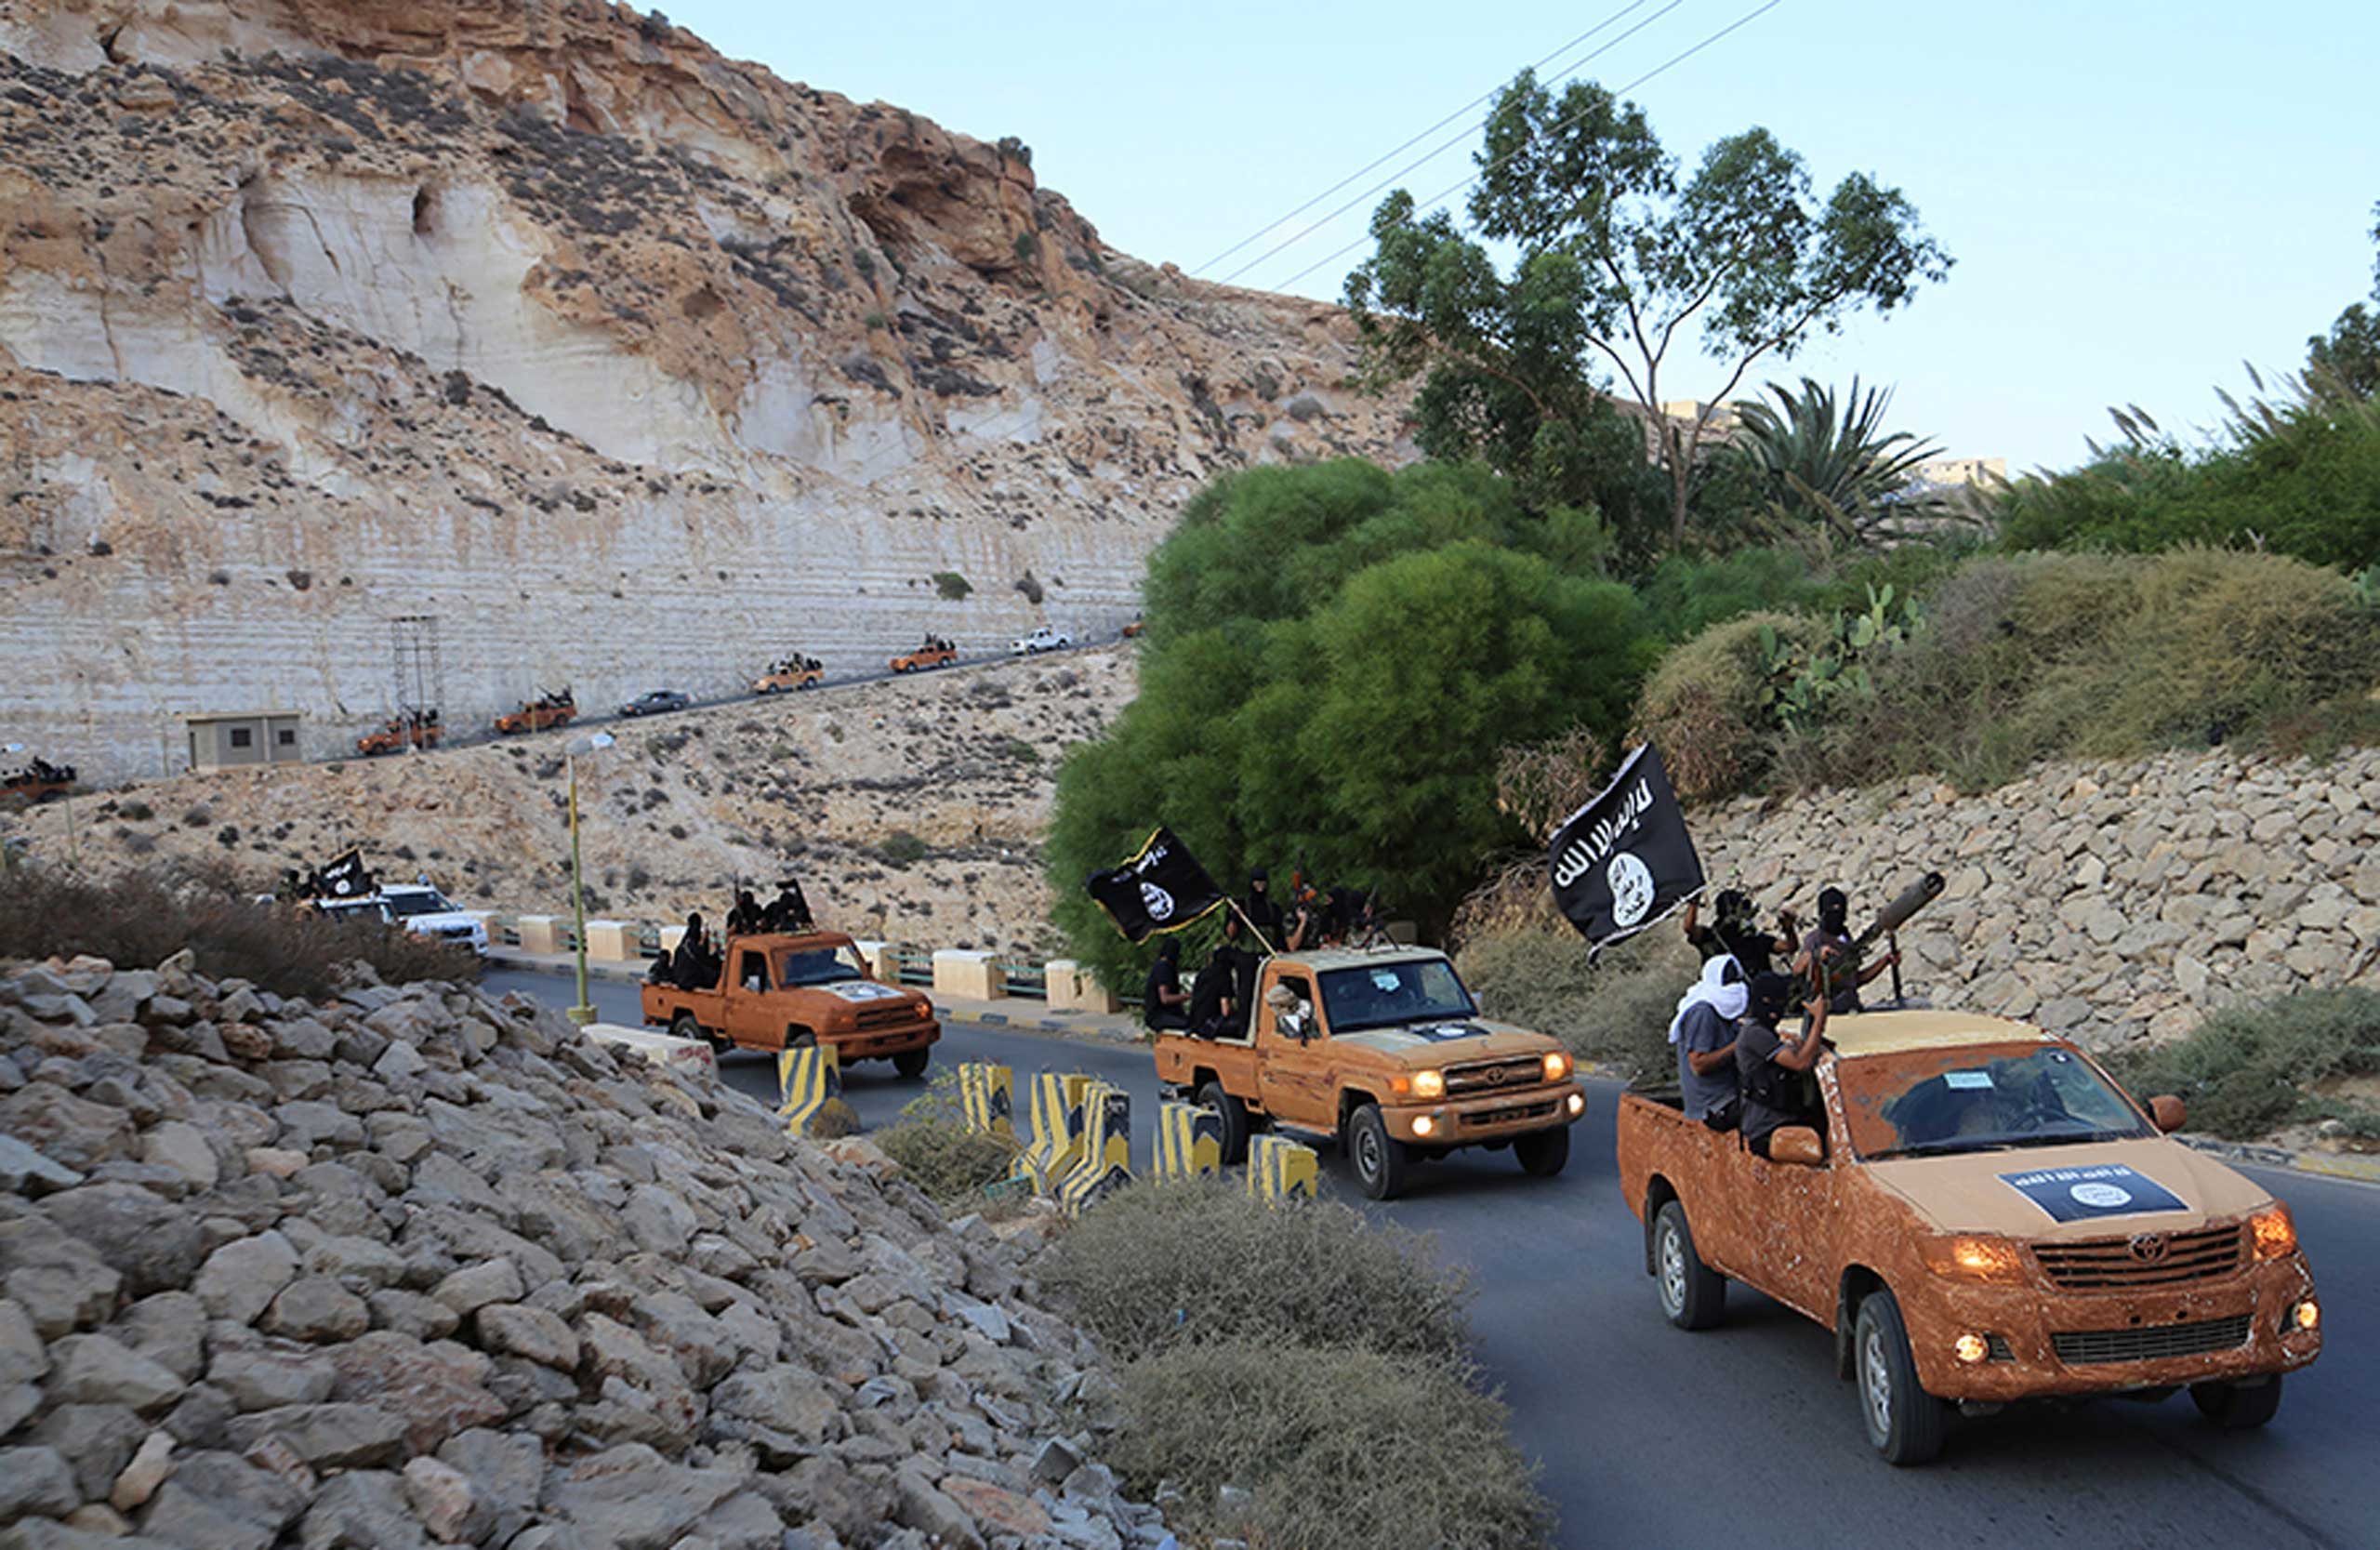 An armed motorcade belonging to members of Darna's Islamic Youth Council, which pledged allegiance to the Islamic State, drive along a road in Derna, eastern Libya, Oct. 3, 2014.